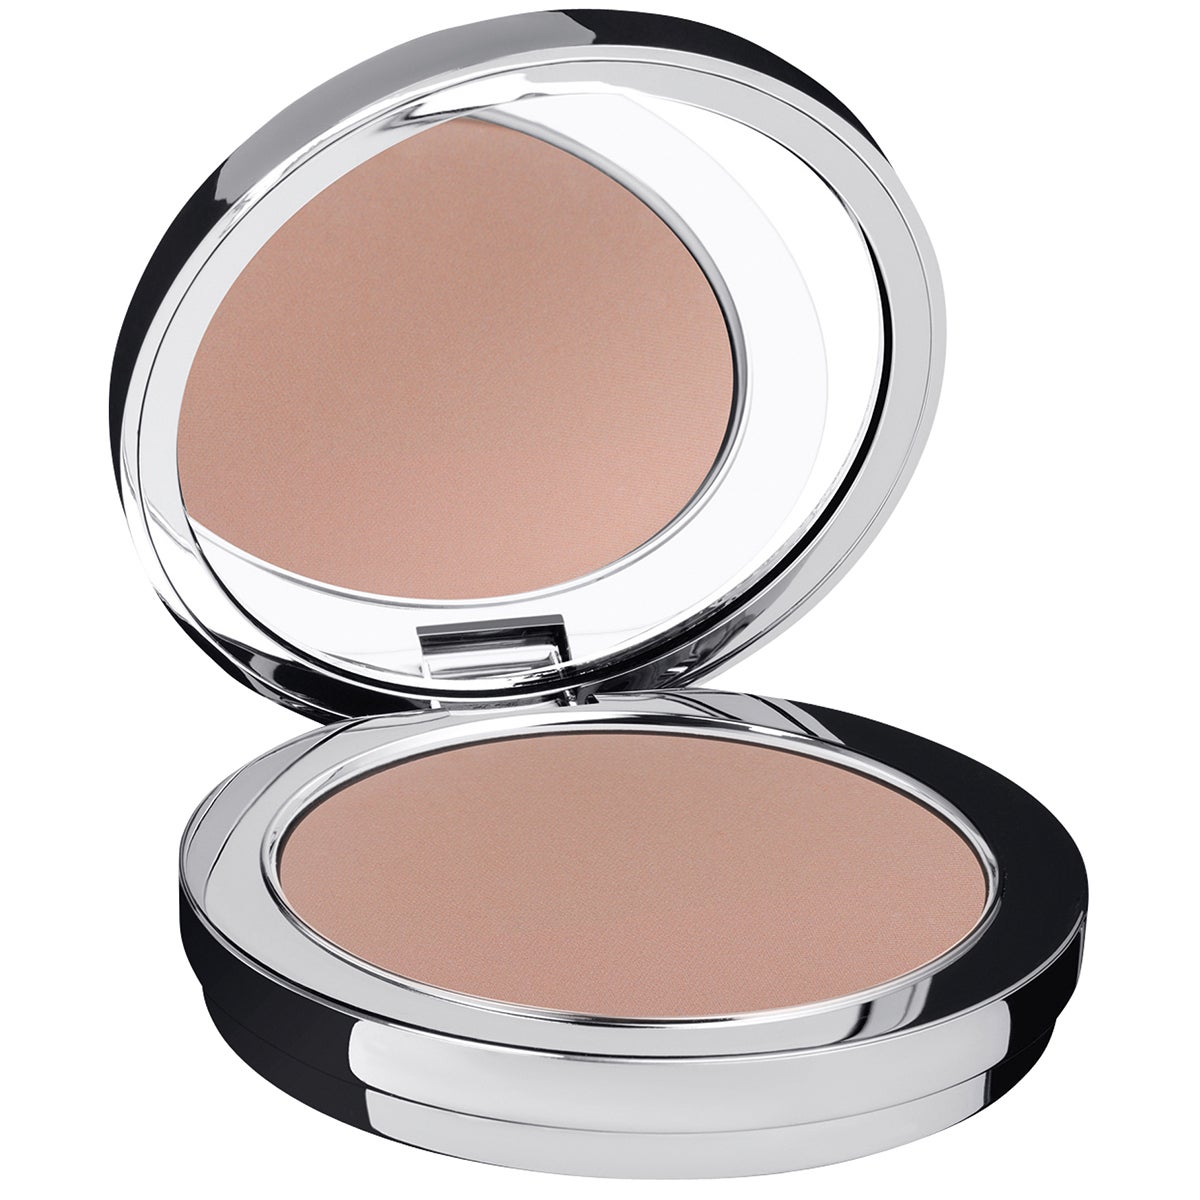 Rodial Instaglam® Compact Deluxe Contouring Powder